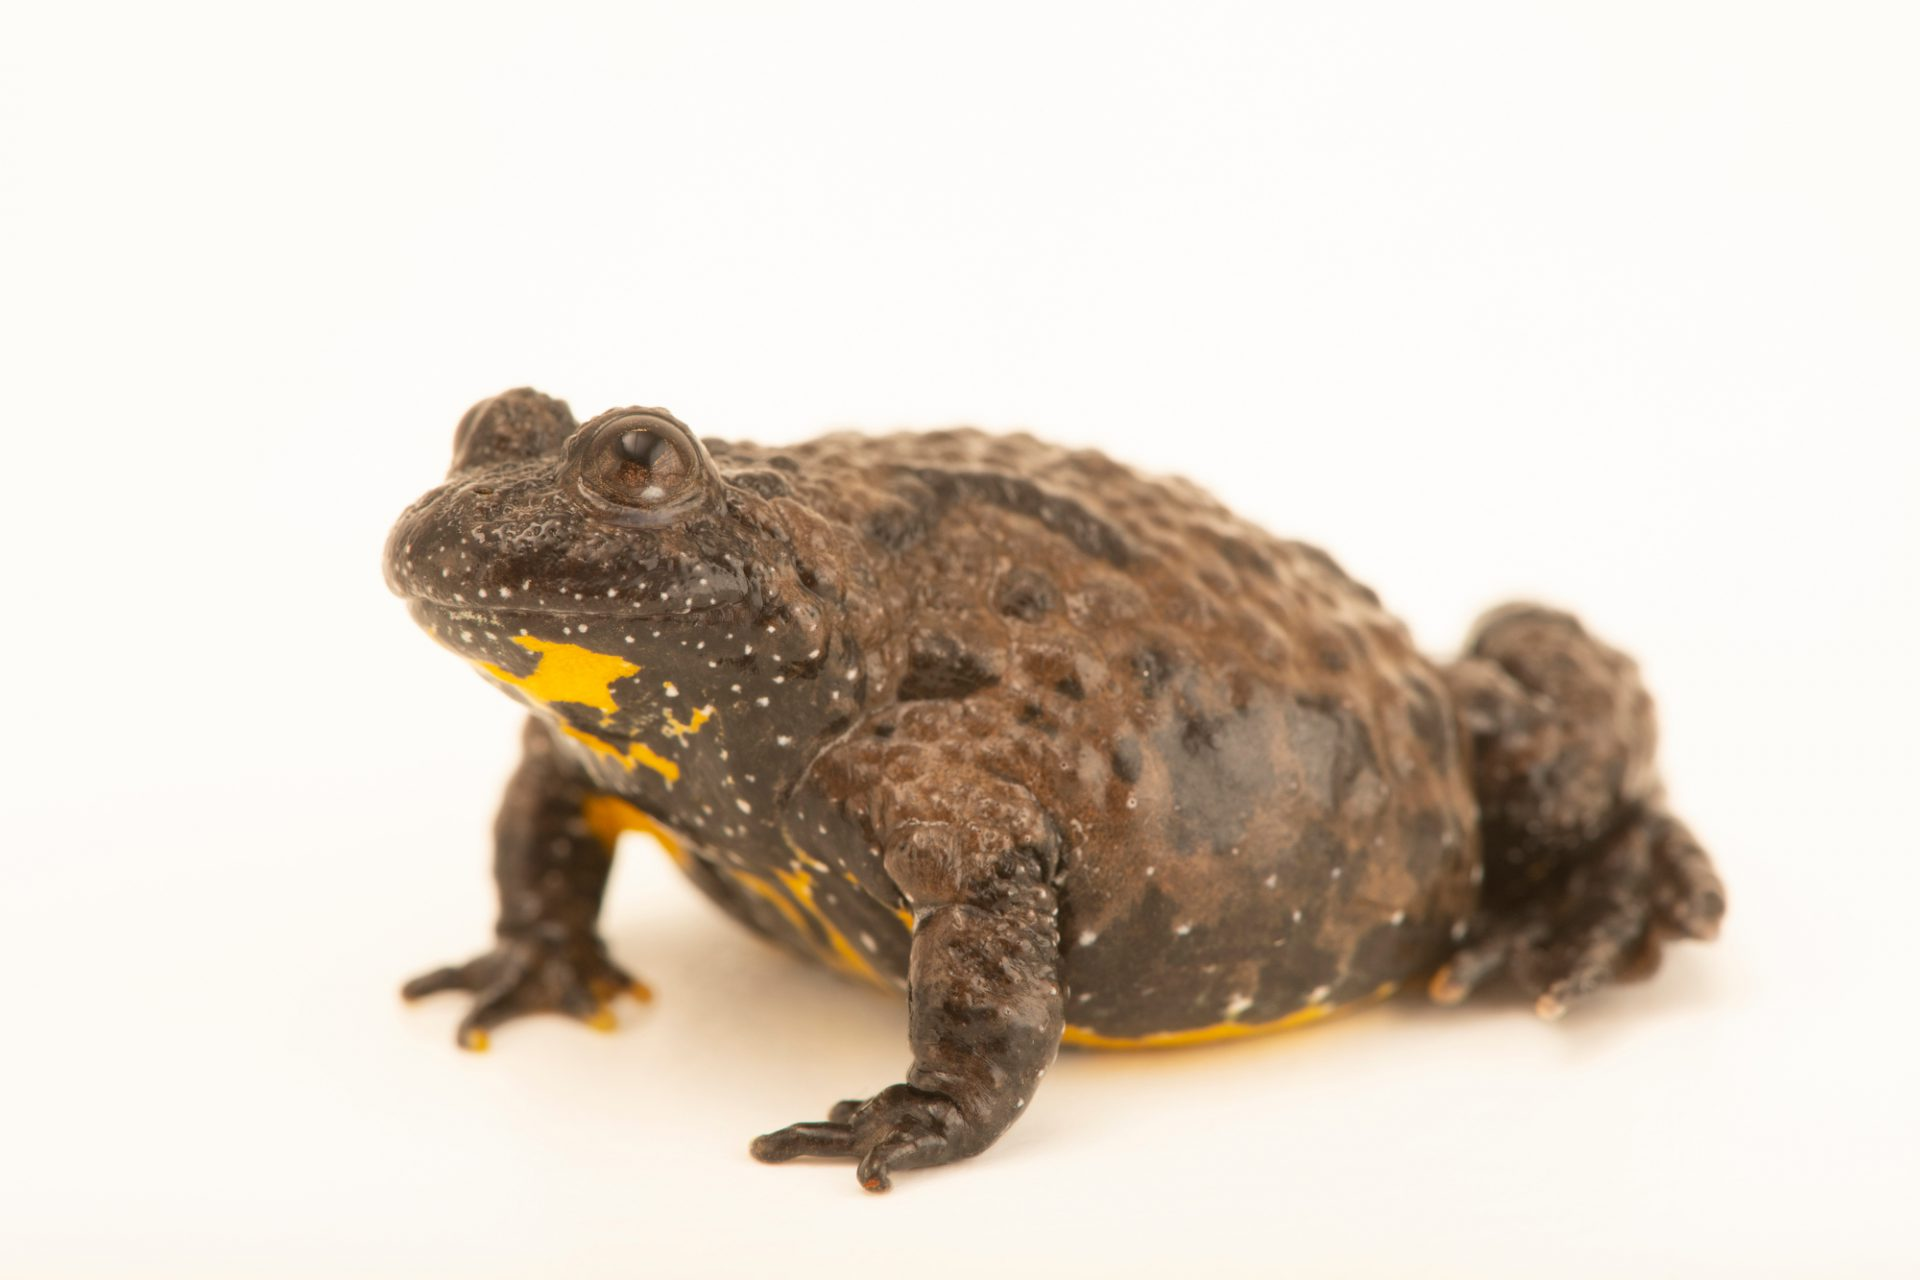 Photo: European yellow-bellied toad (Bombina variegata) at the Moscow Zoo.